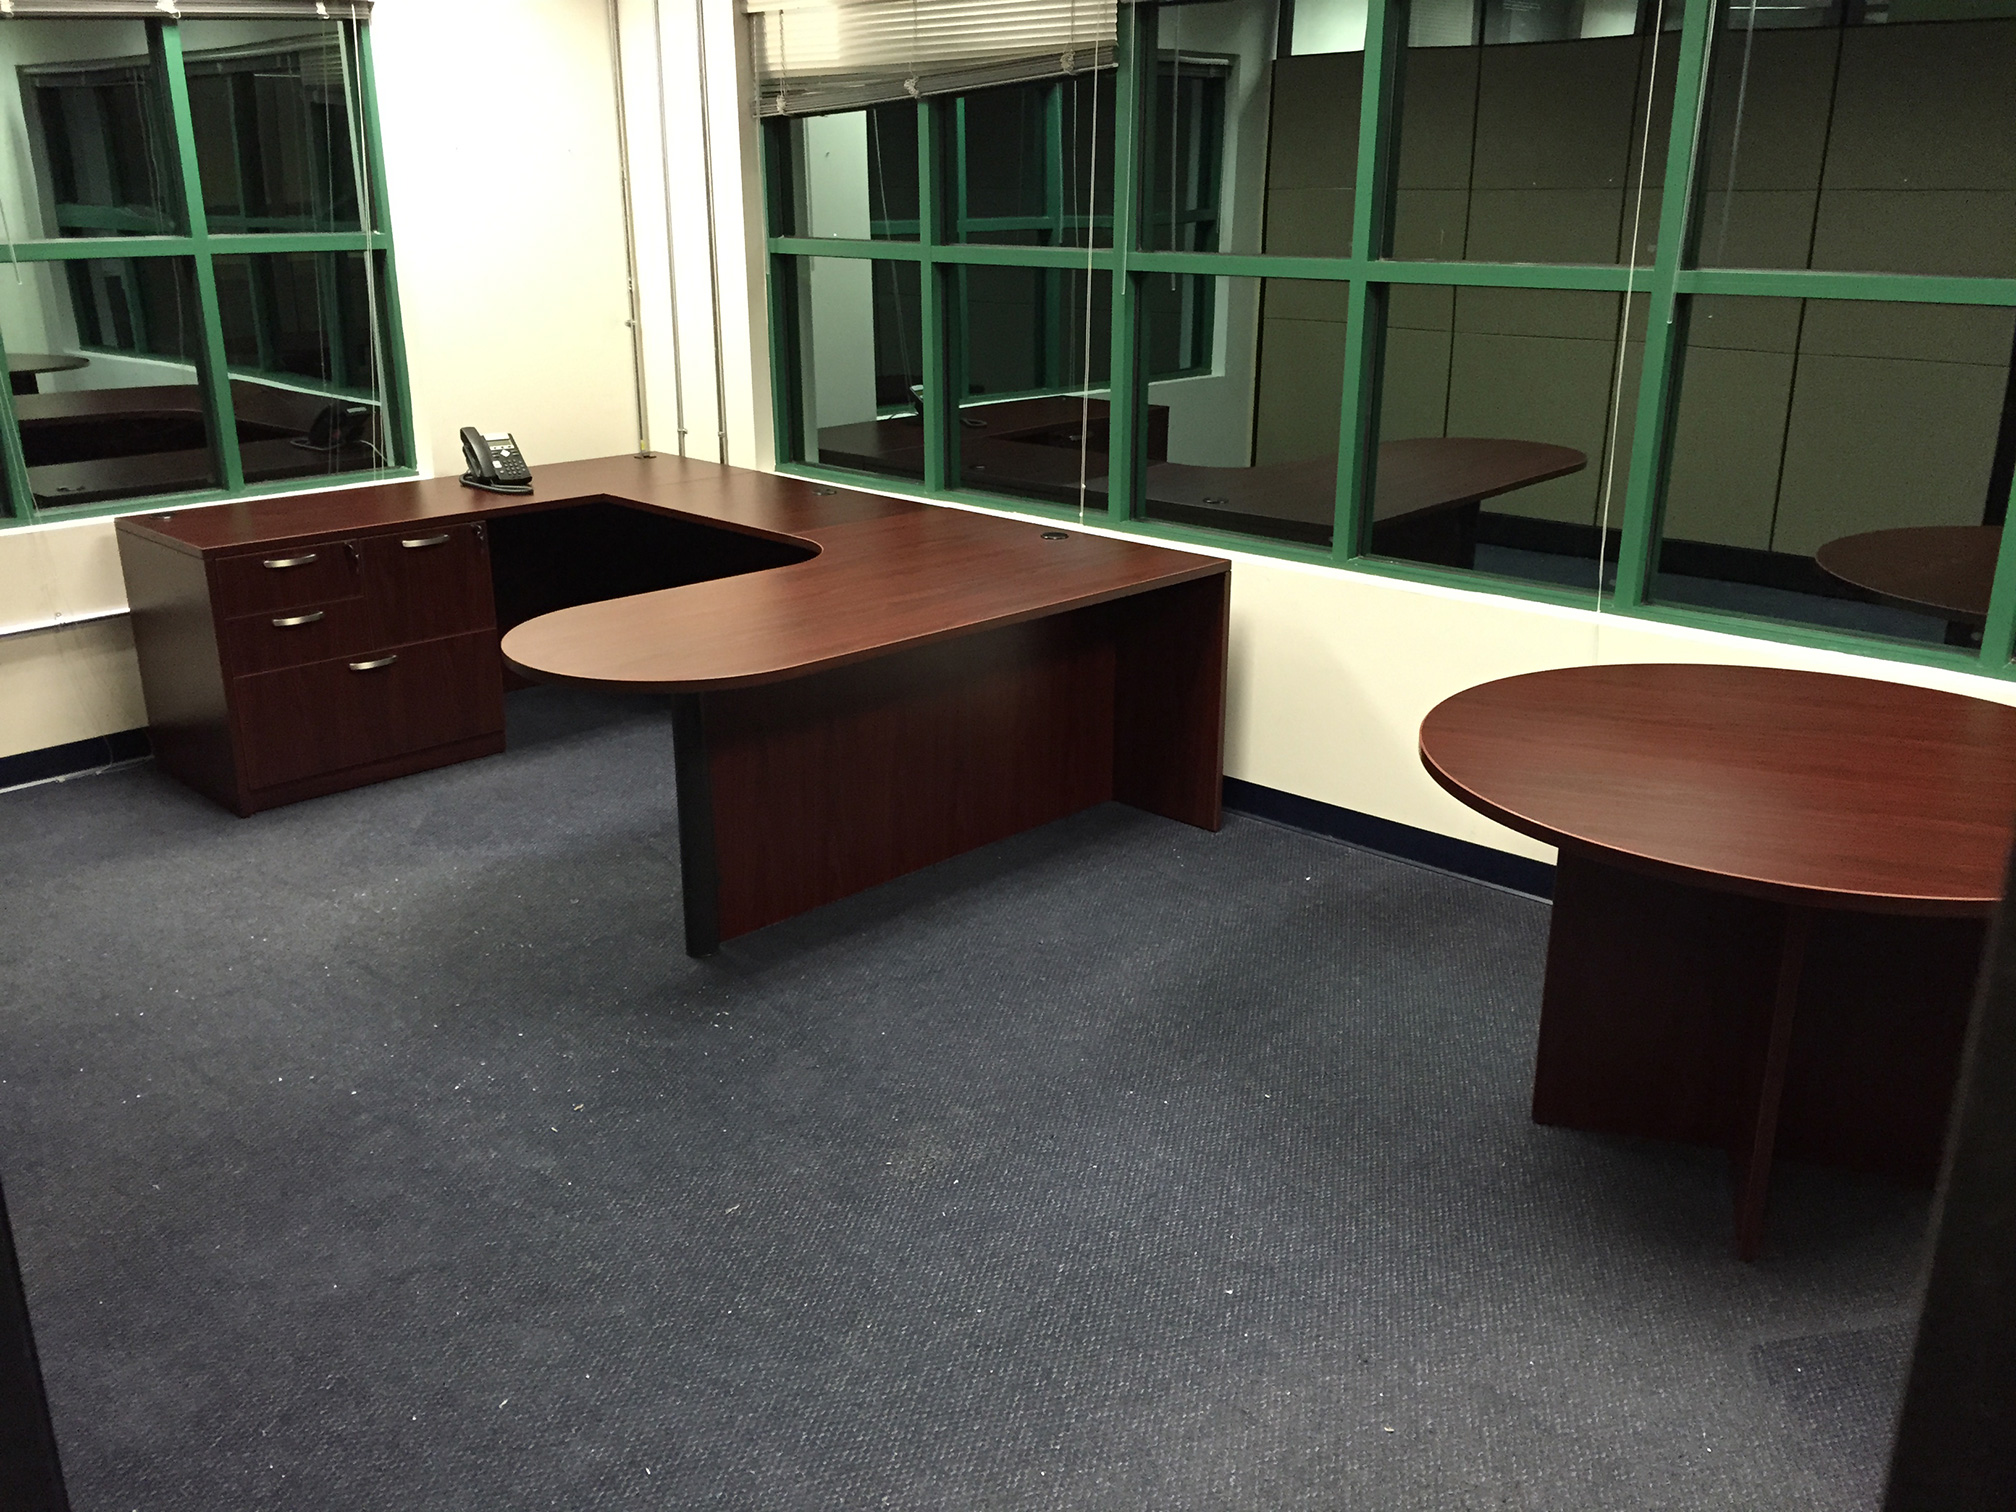 custom-desk-manasota-office-supplies-llc.jpg